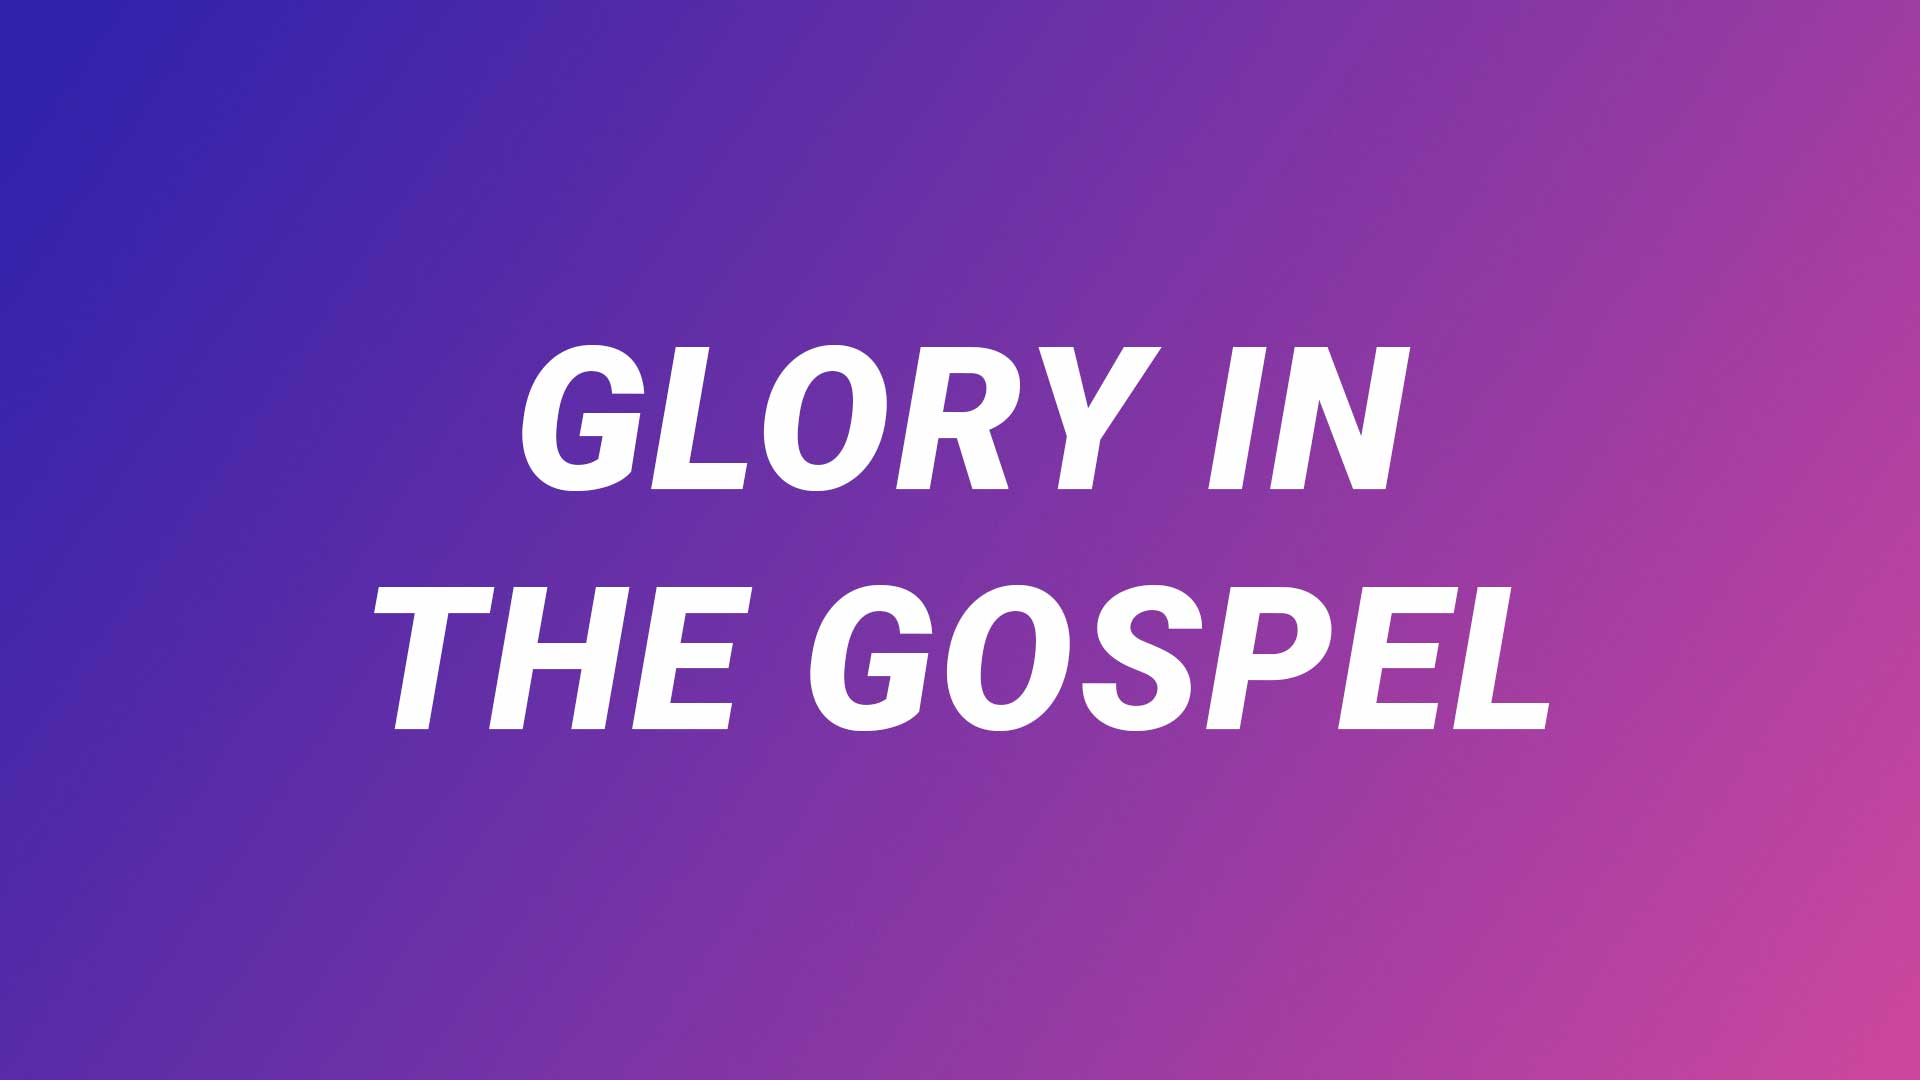 Glory in the Gospel (Part 4) - Belonging